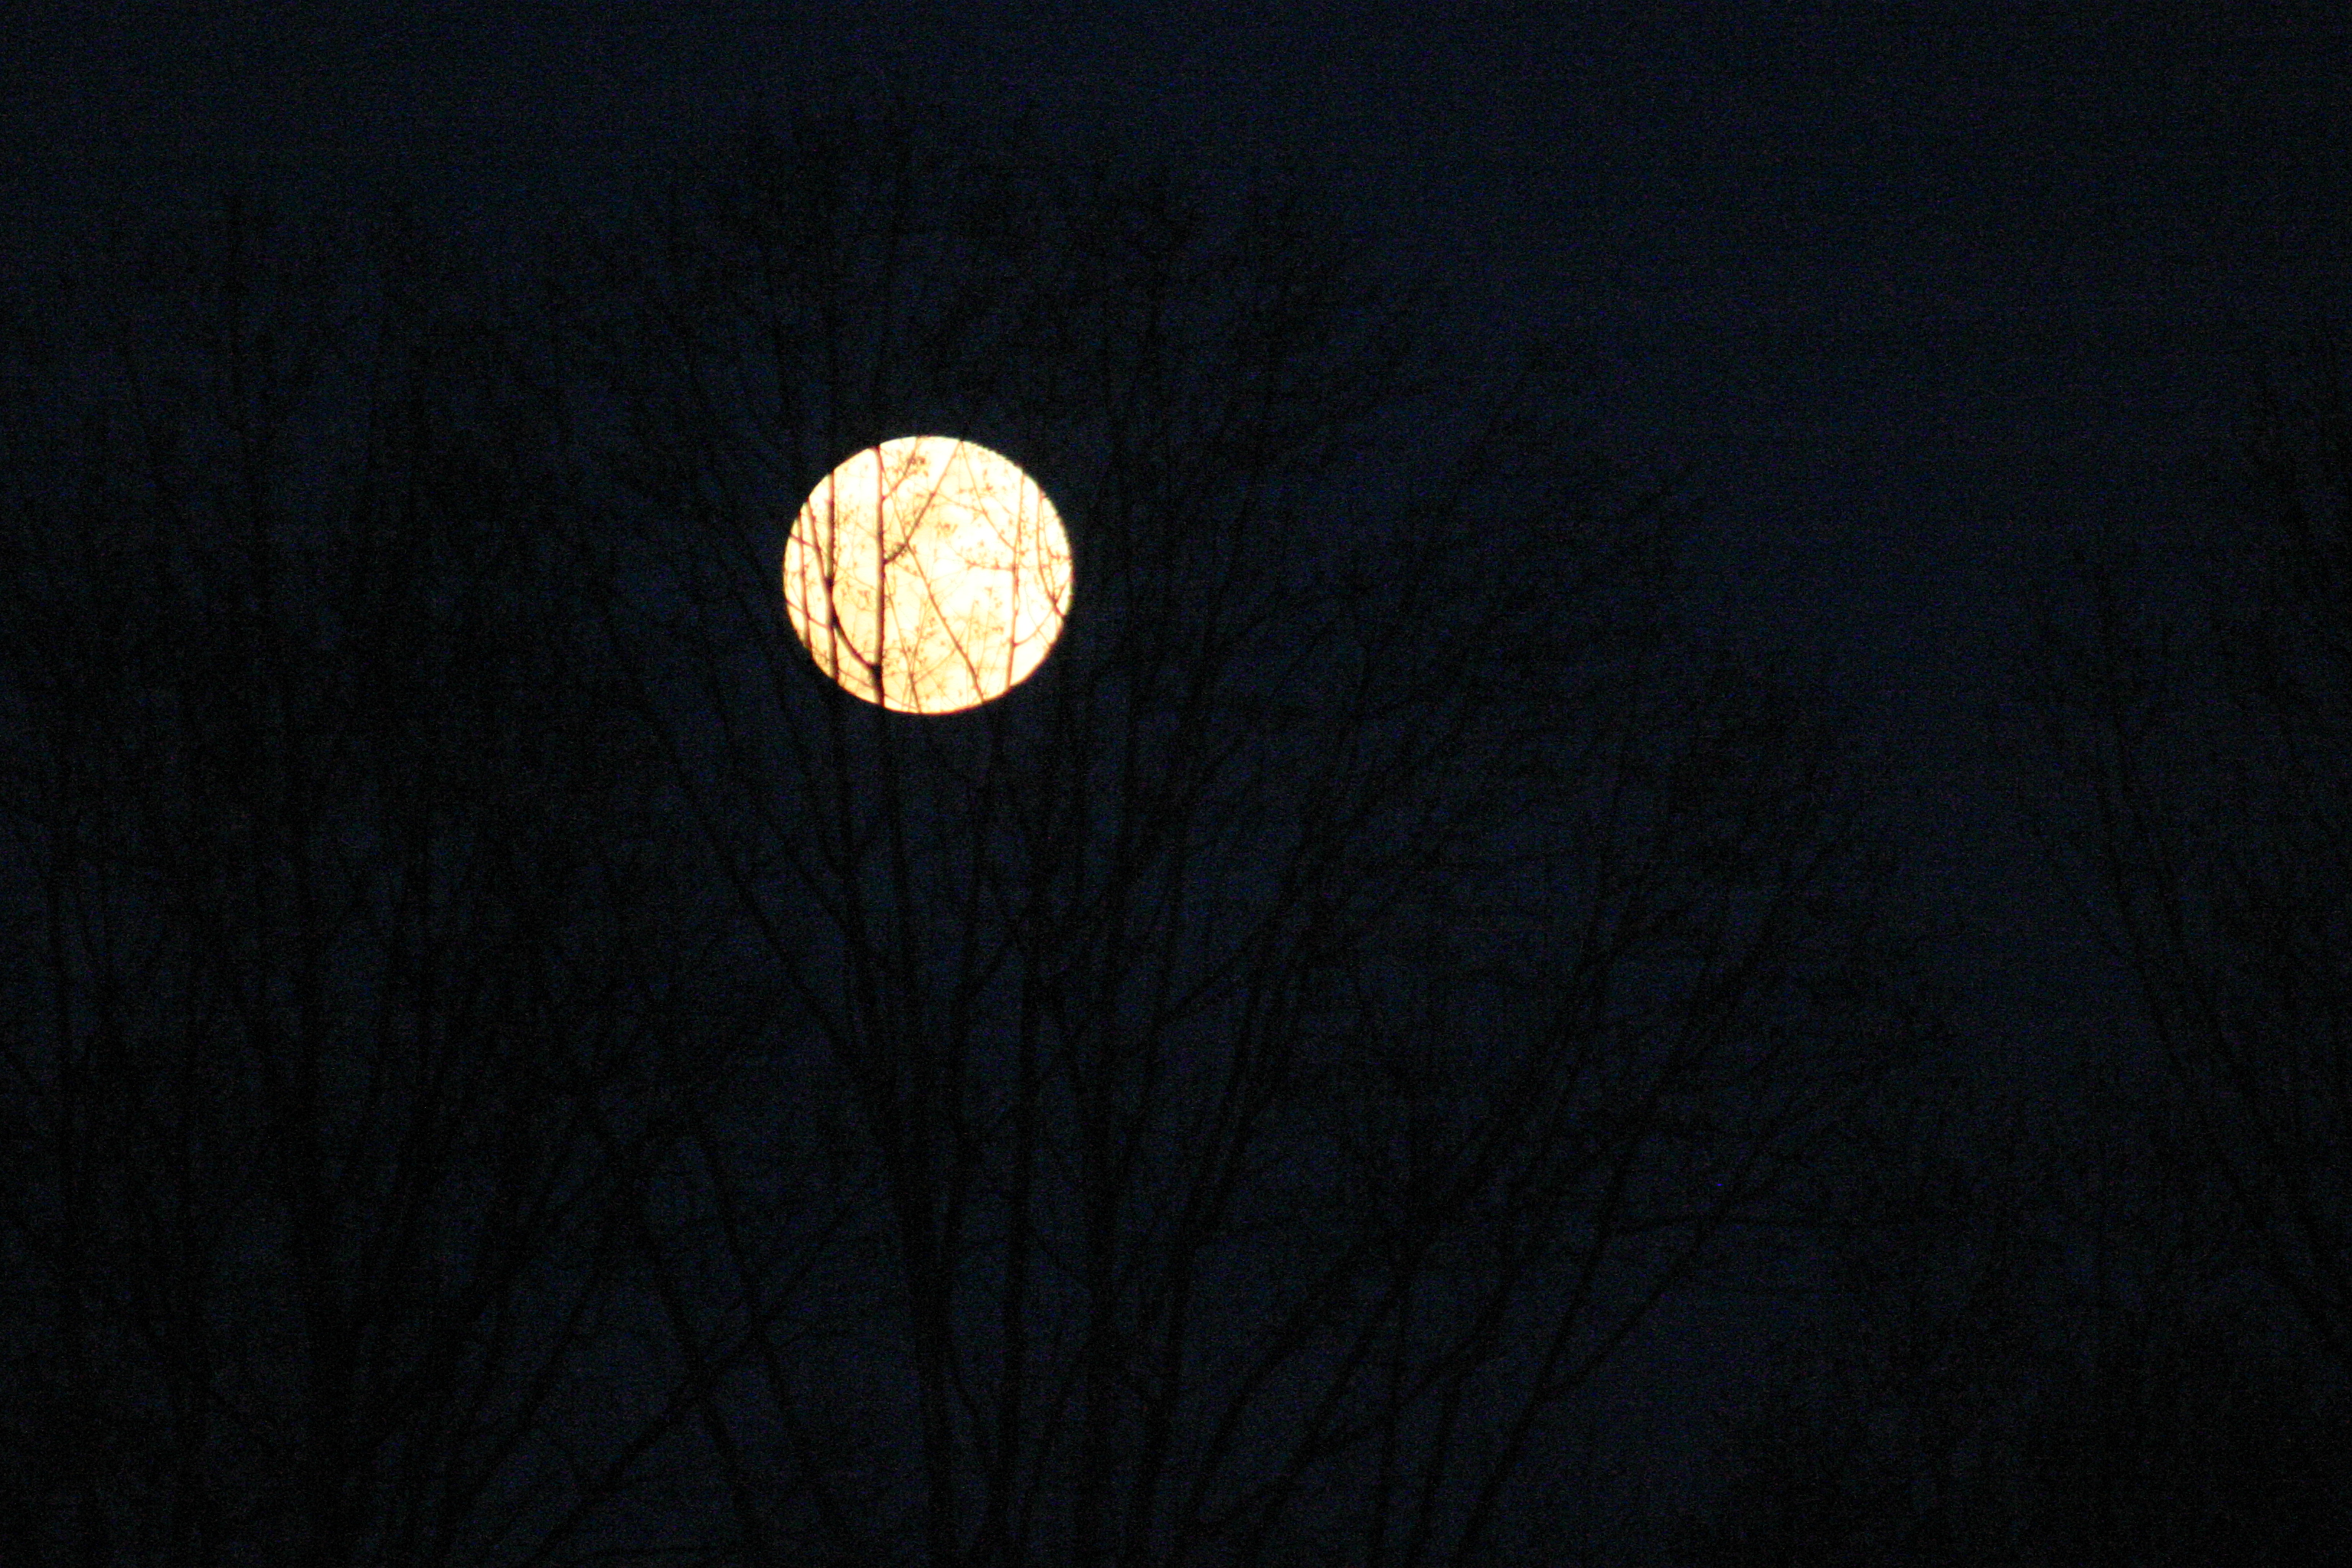 My photo: March 29, 2010 'March Moon Rising' – Good Enough for Halloween 2018